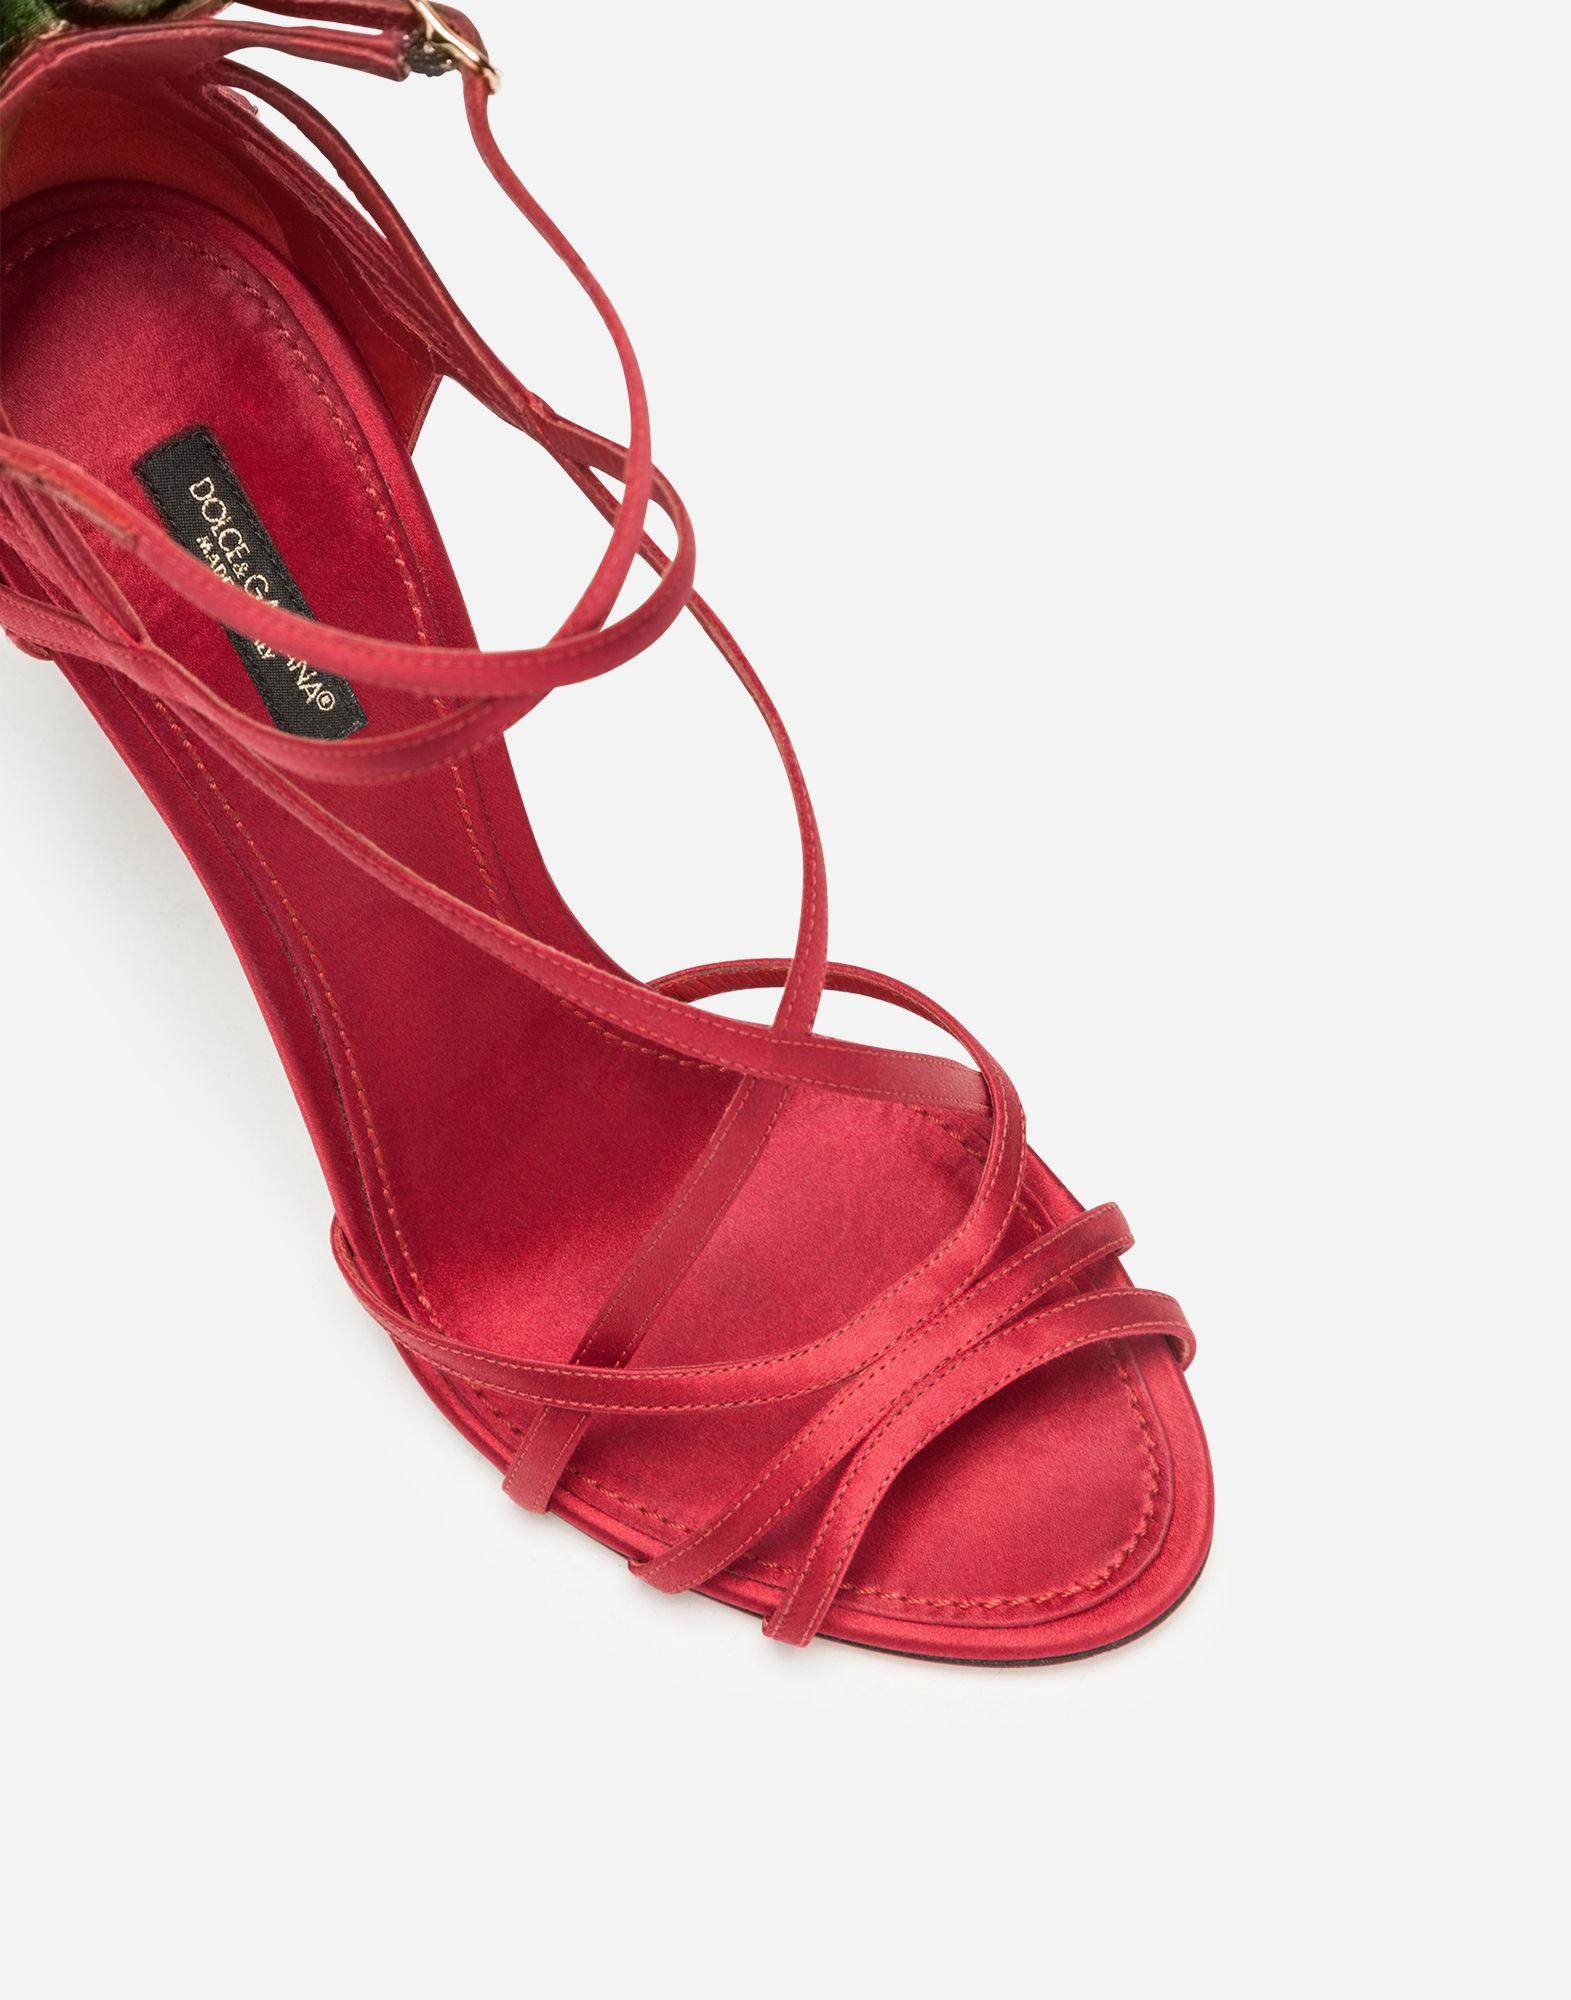 a5f96c8da7f Lyst - Dolce   Gabbana Satin Sandals With Embroidery in Red